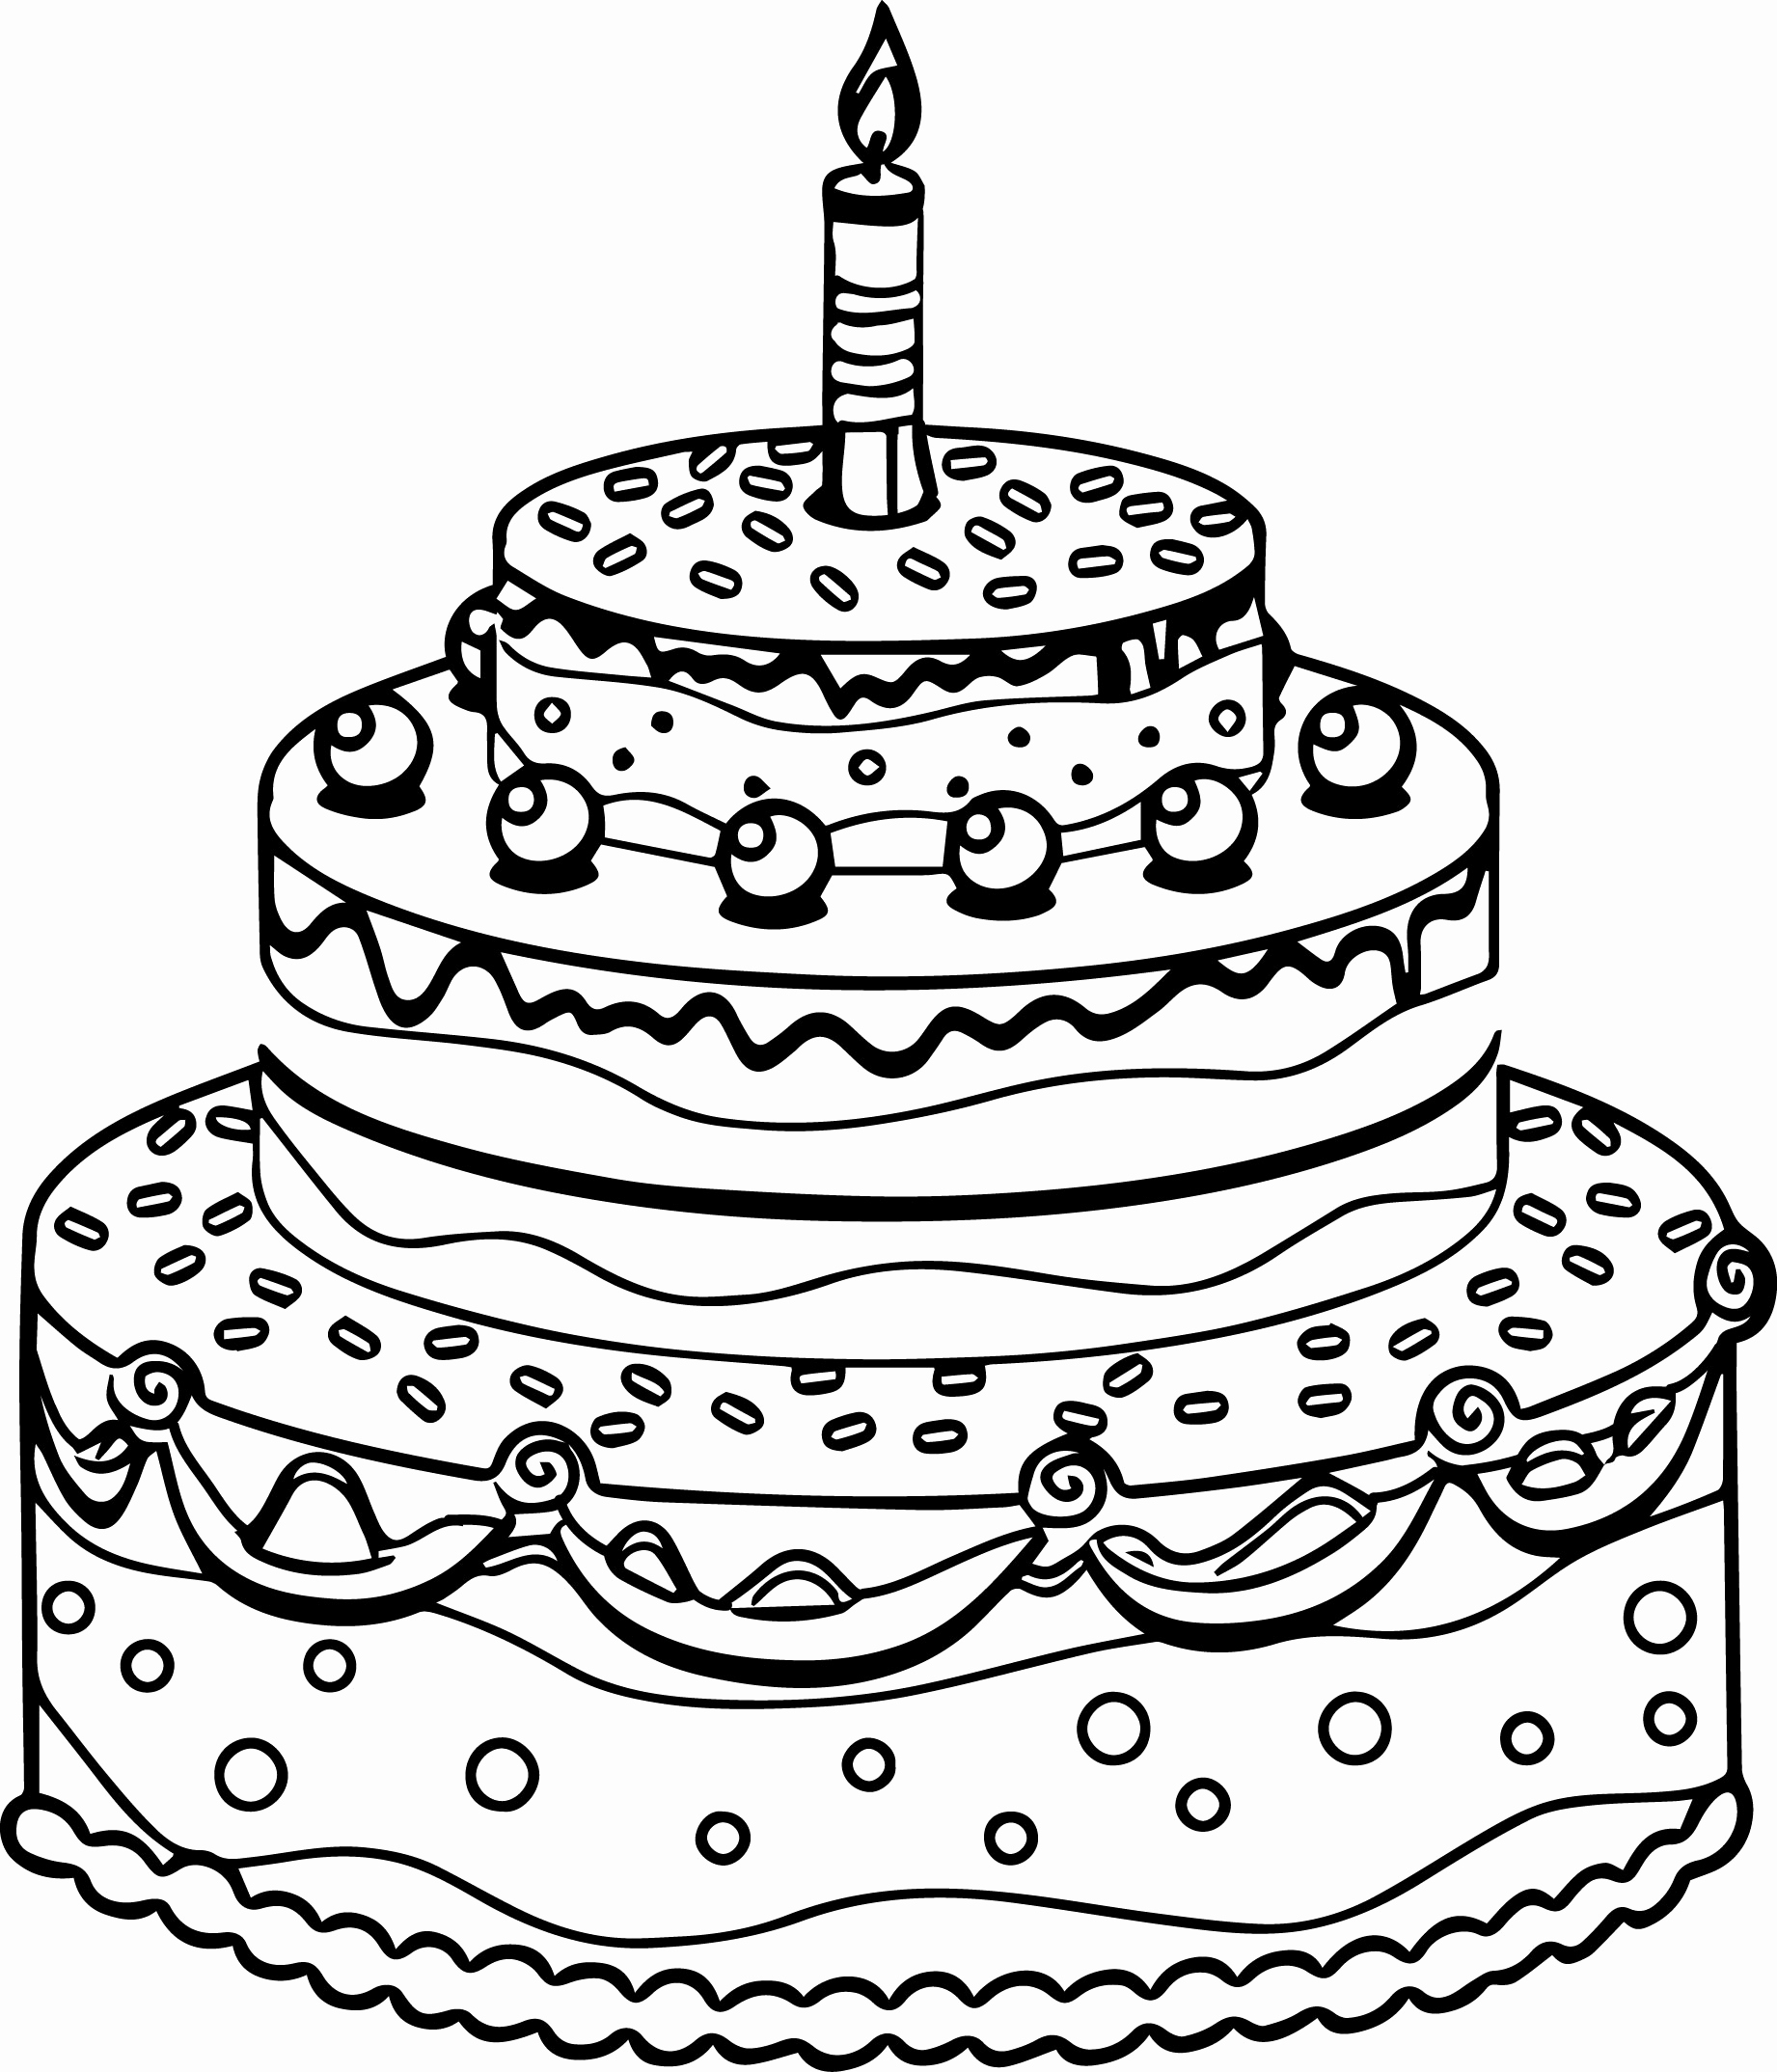 coloring pages birthday cake birthday cakes simple birthday cake coloring page coloring cake birthday pages